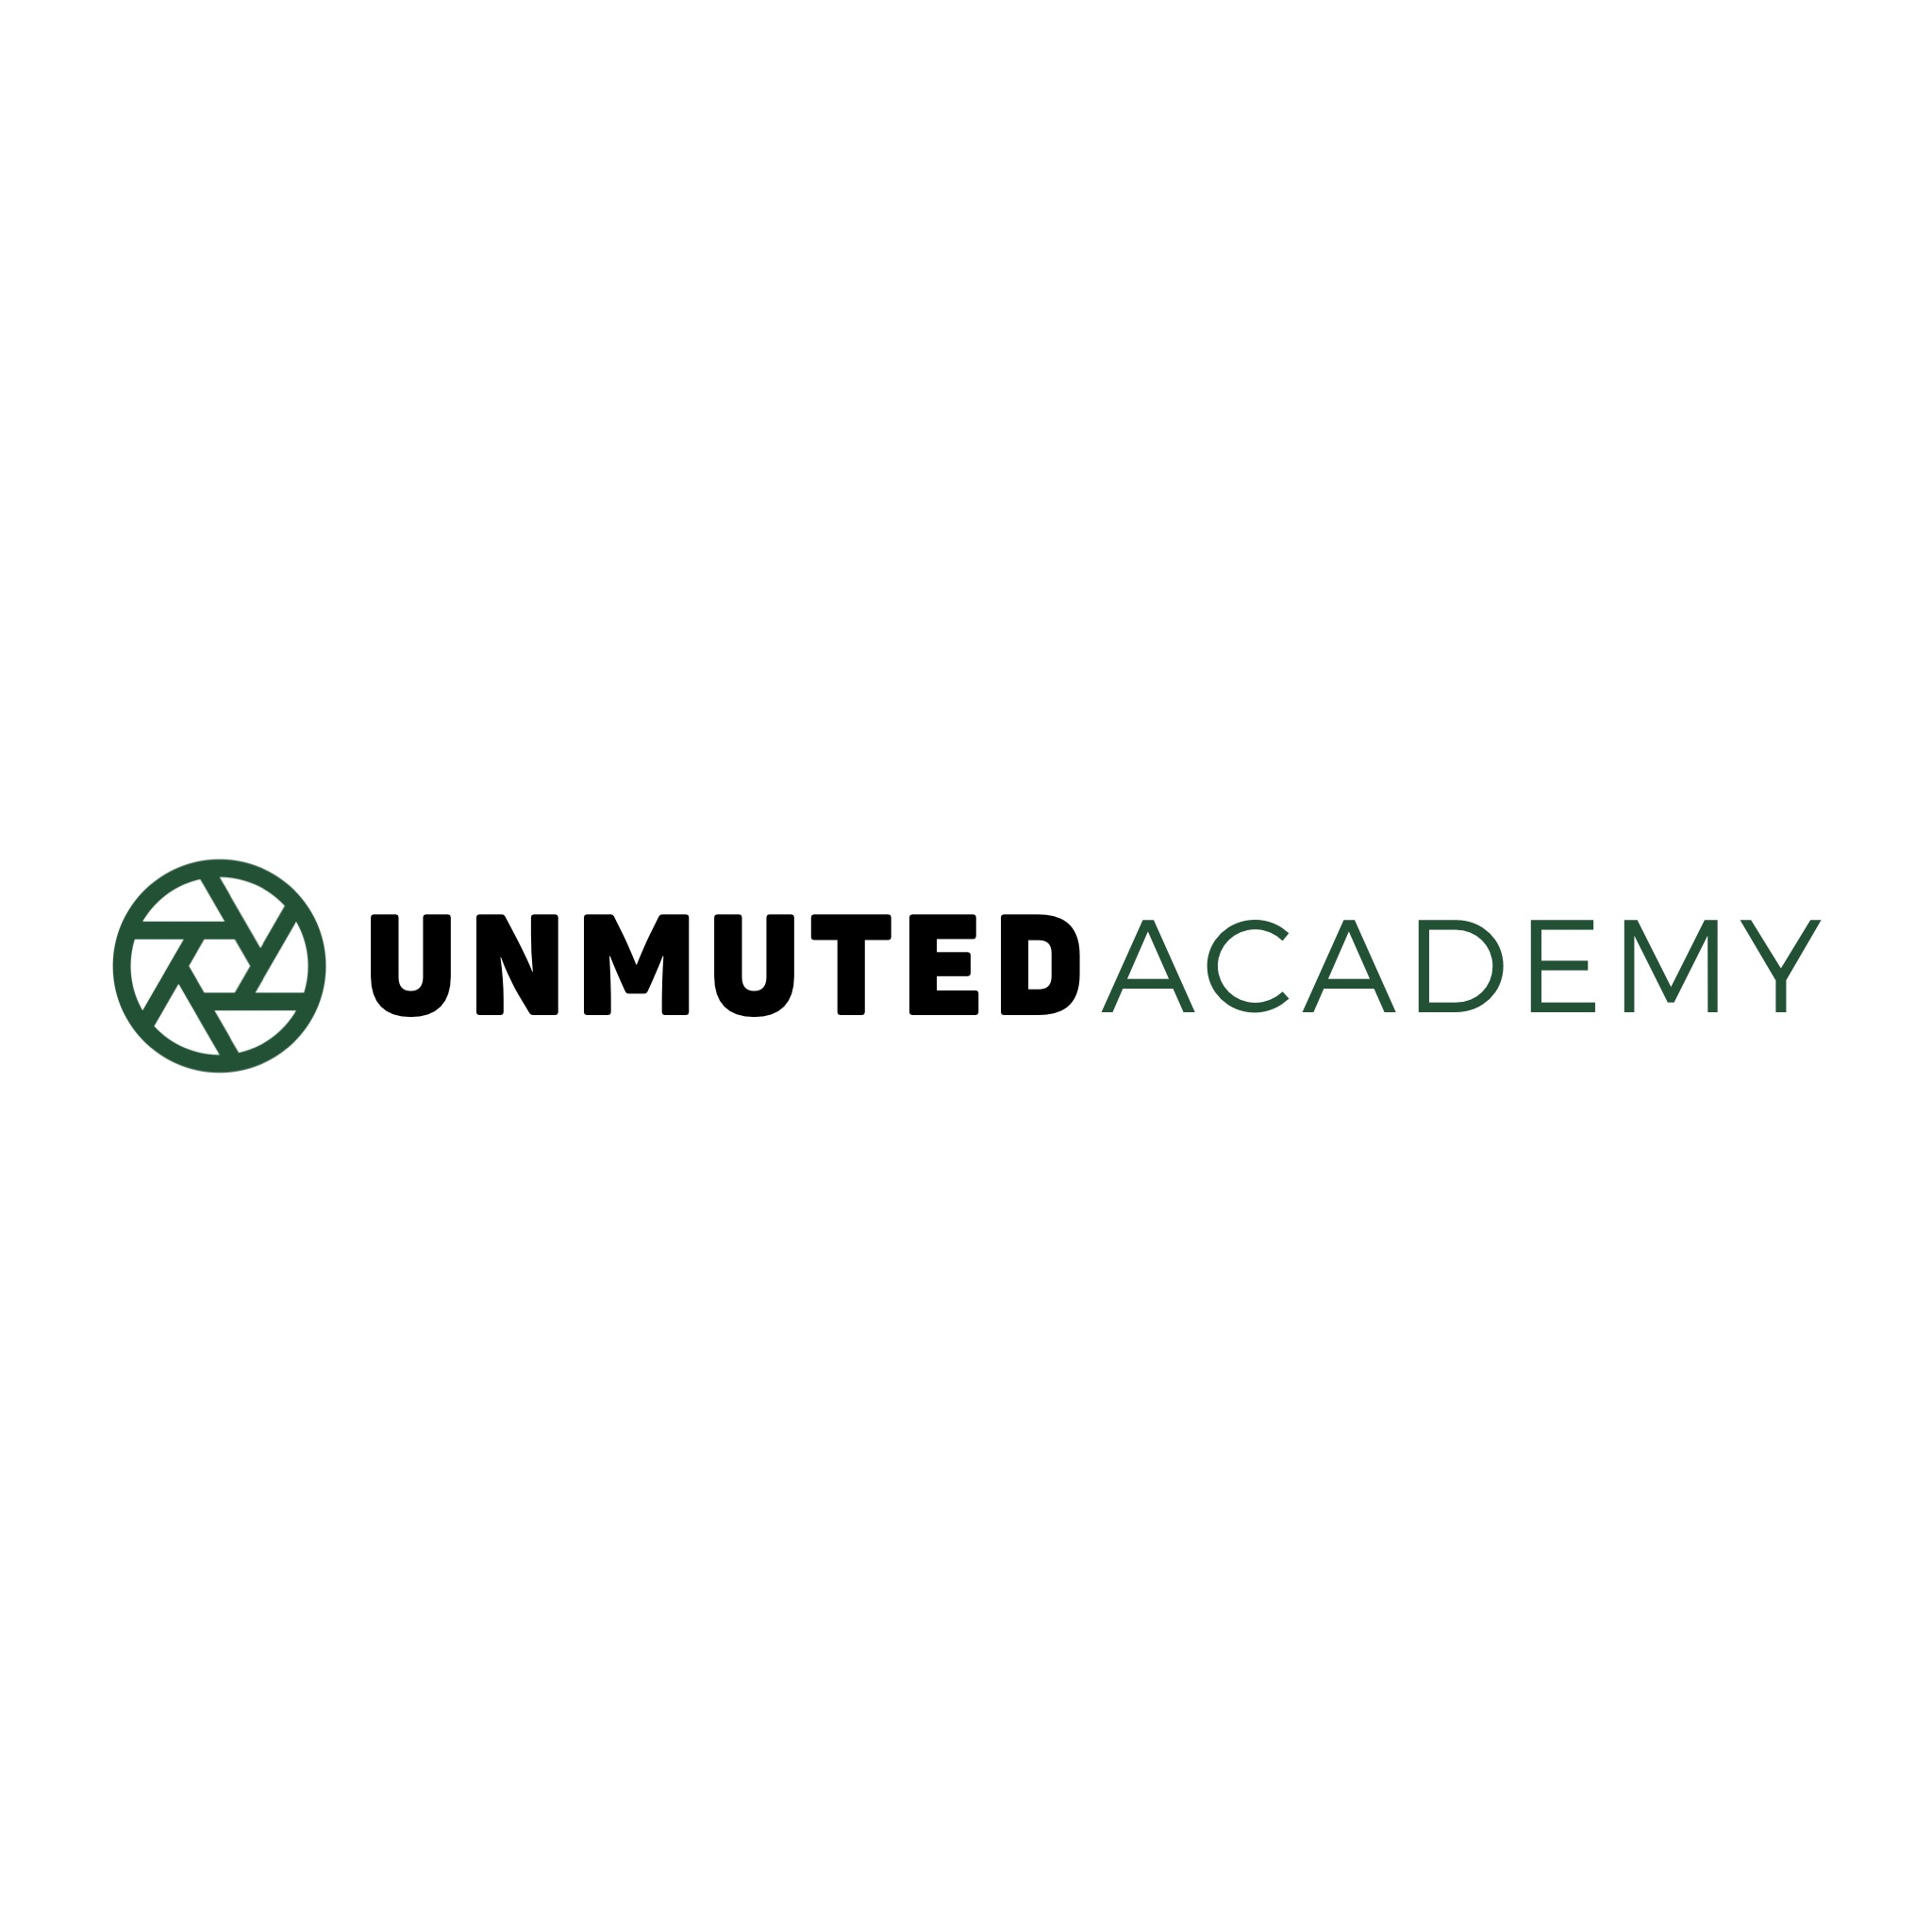 Unmuted Academy